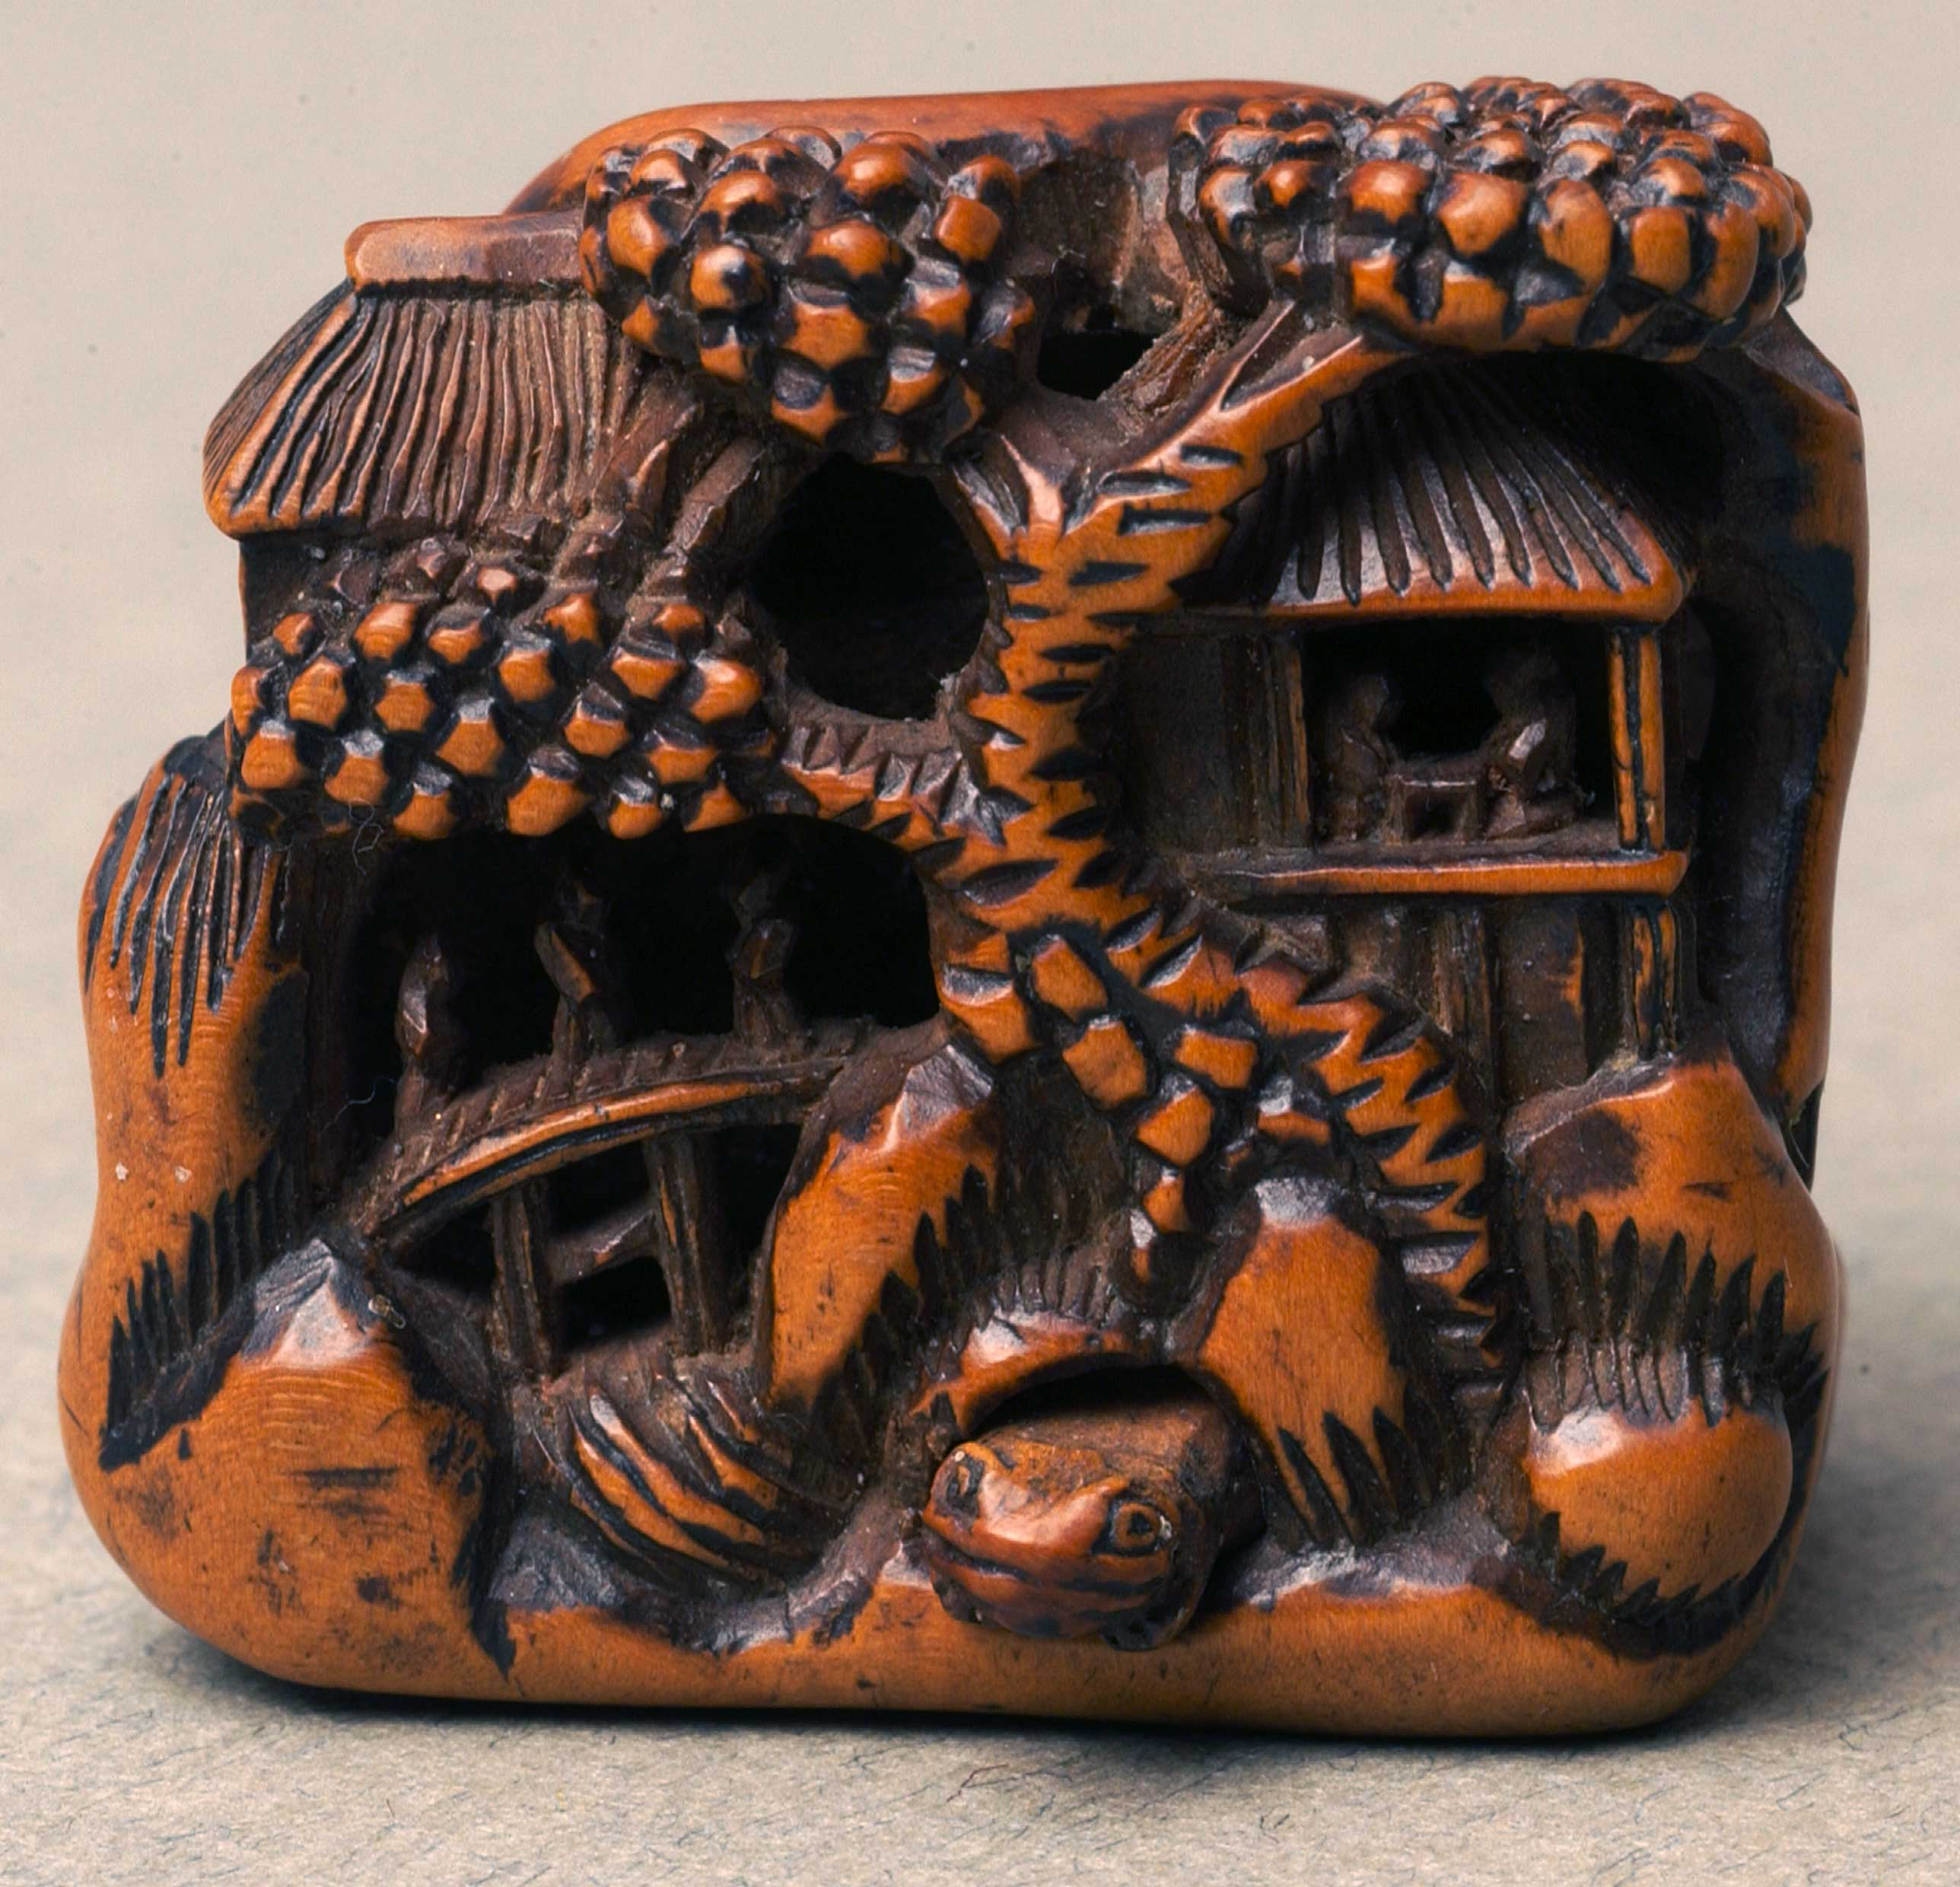 Netsuke depicting a house